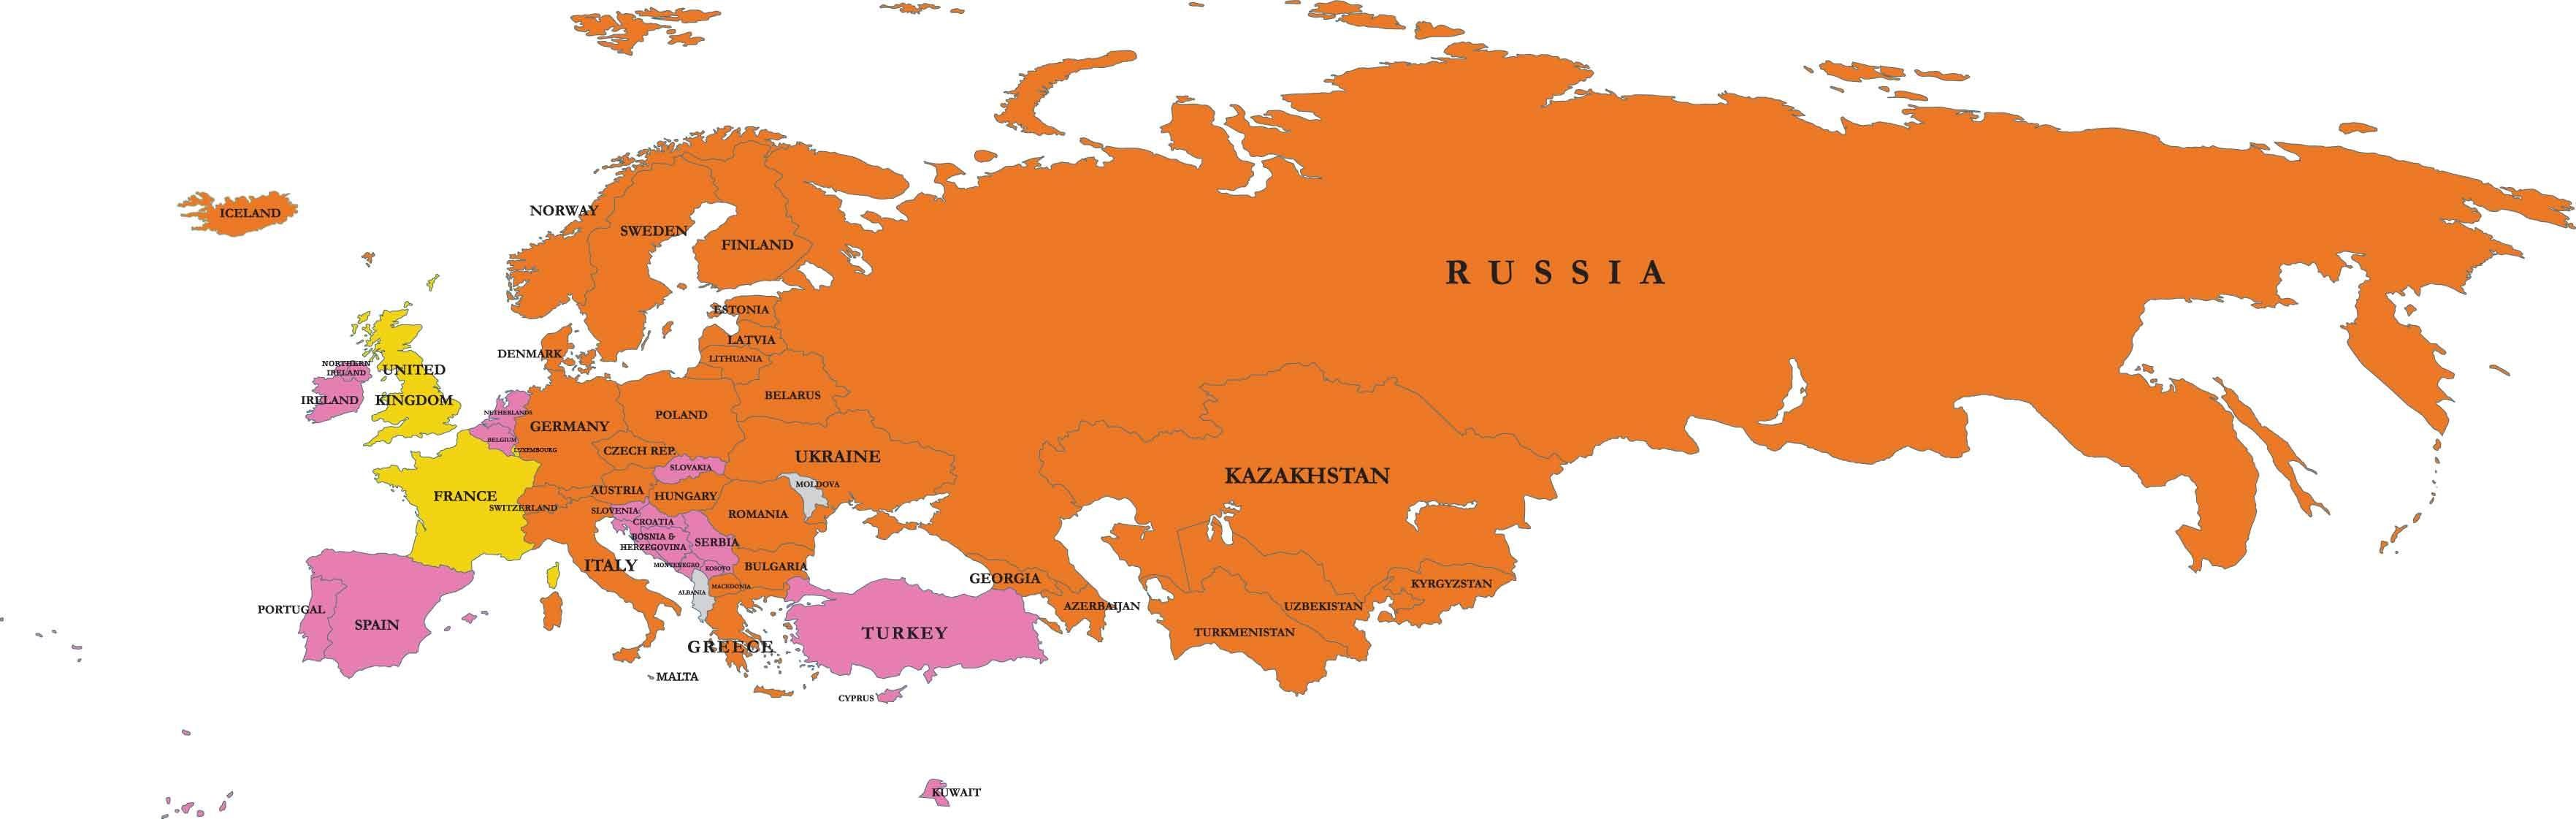 Map of Russia and Europe - Map Pictures